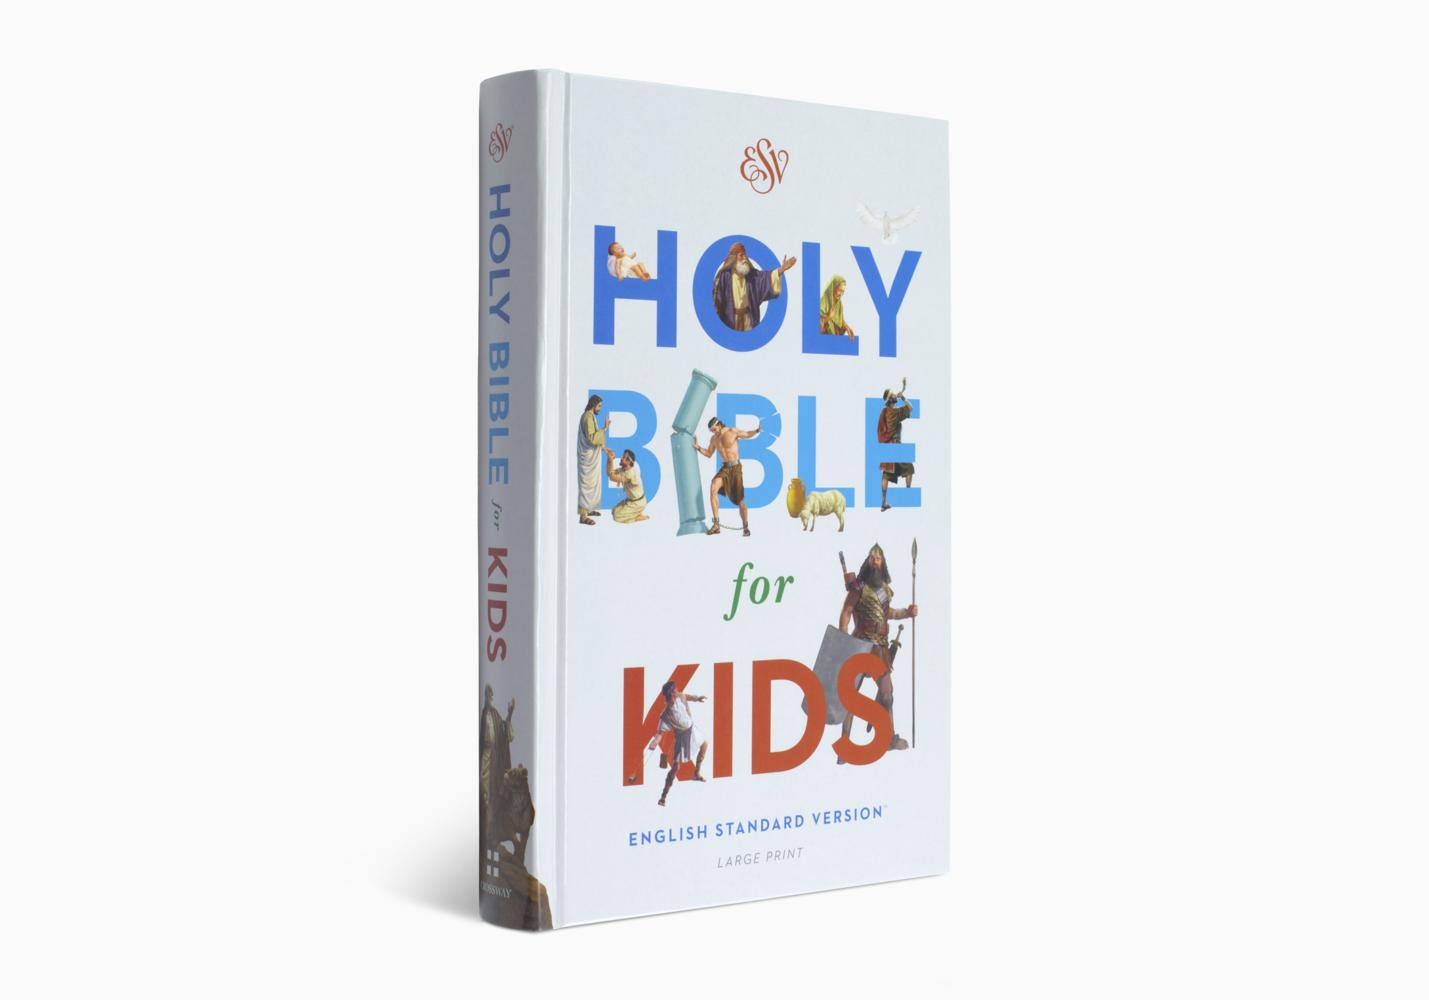 ESV Holy Bible for Kids, Large Print